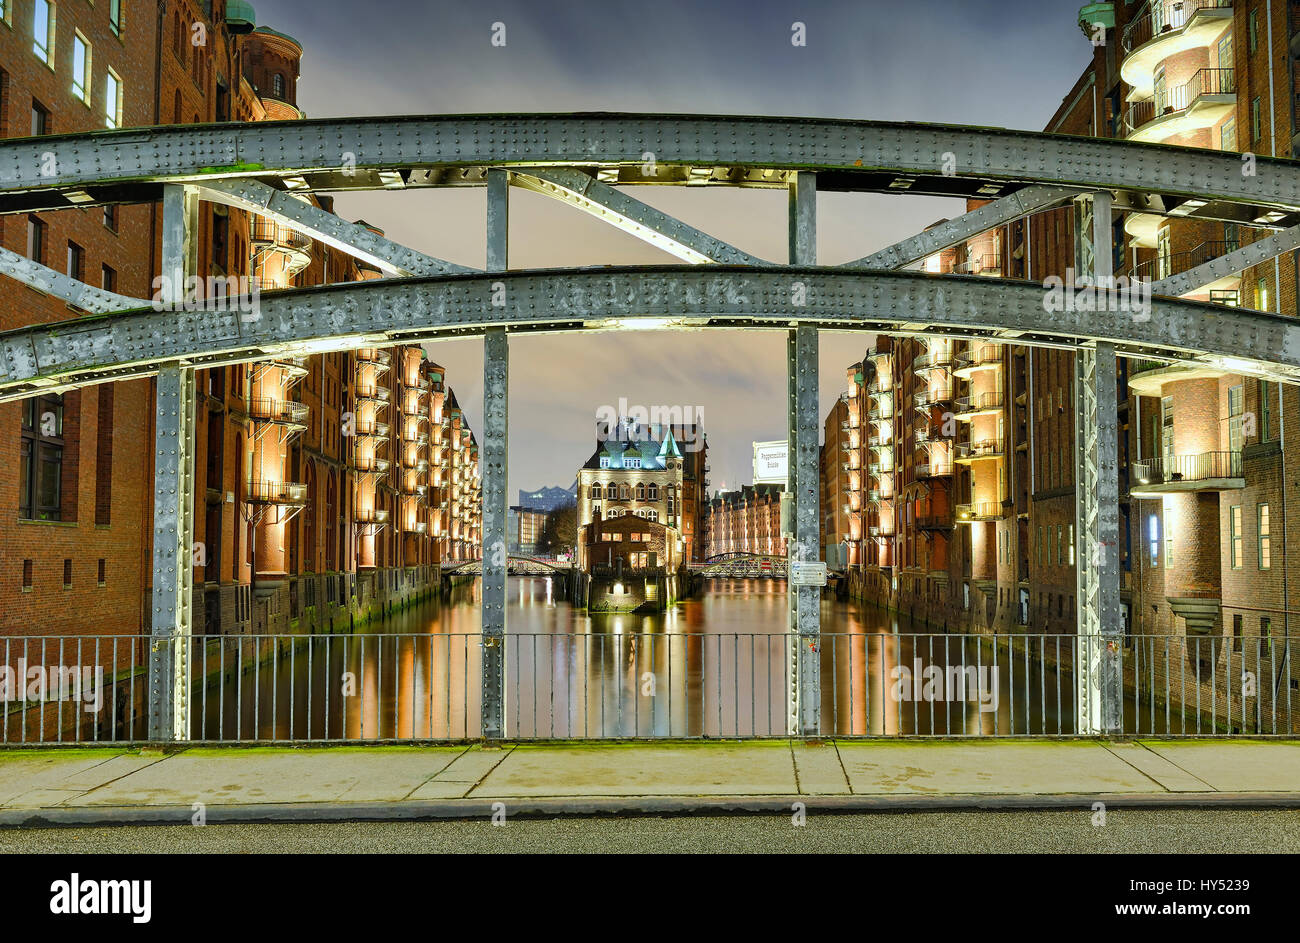 Water small castles between the canals in the memory town of Hamburg, Germany, Europe, Wasserschloesschen zwischen den Fleeten in der Speicherstadt vo Stock Photo